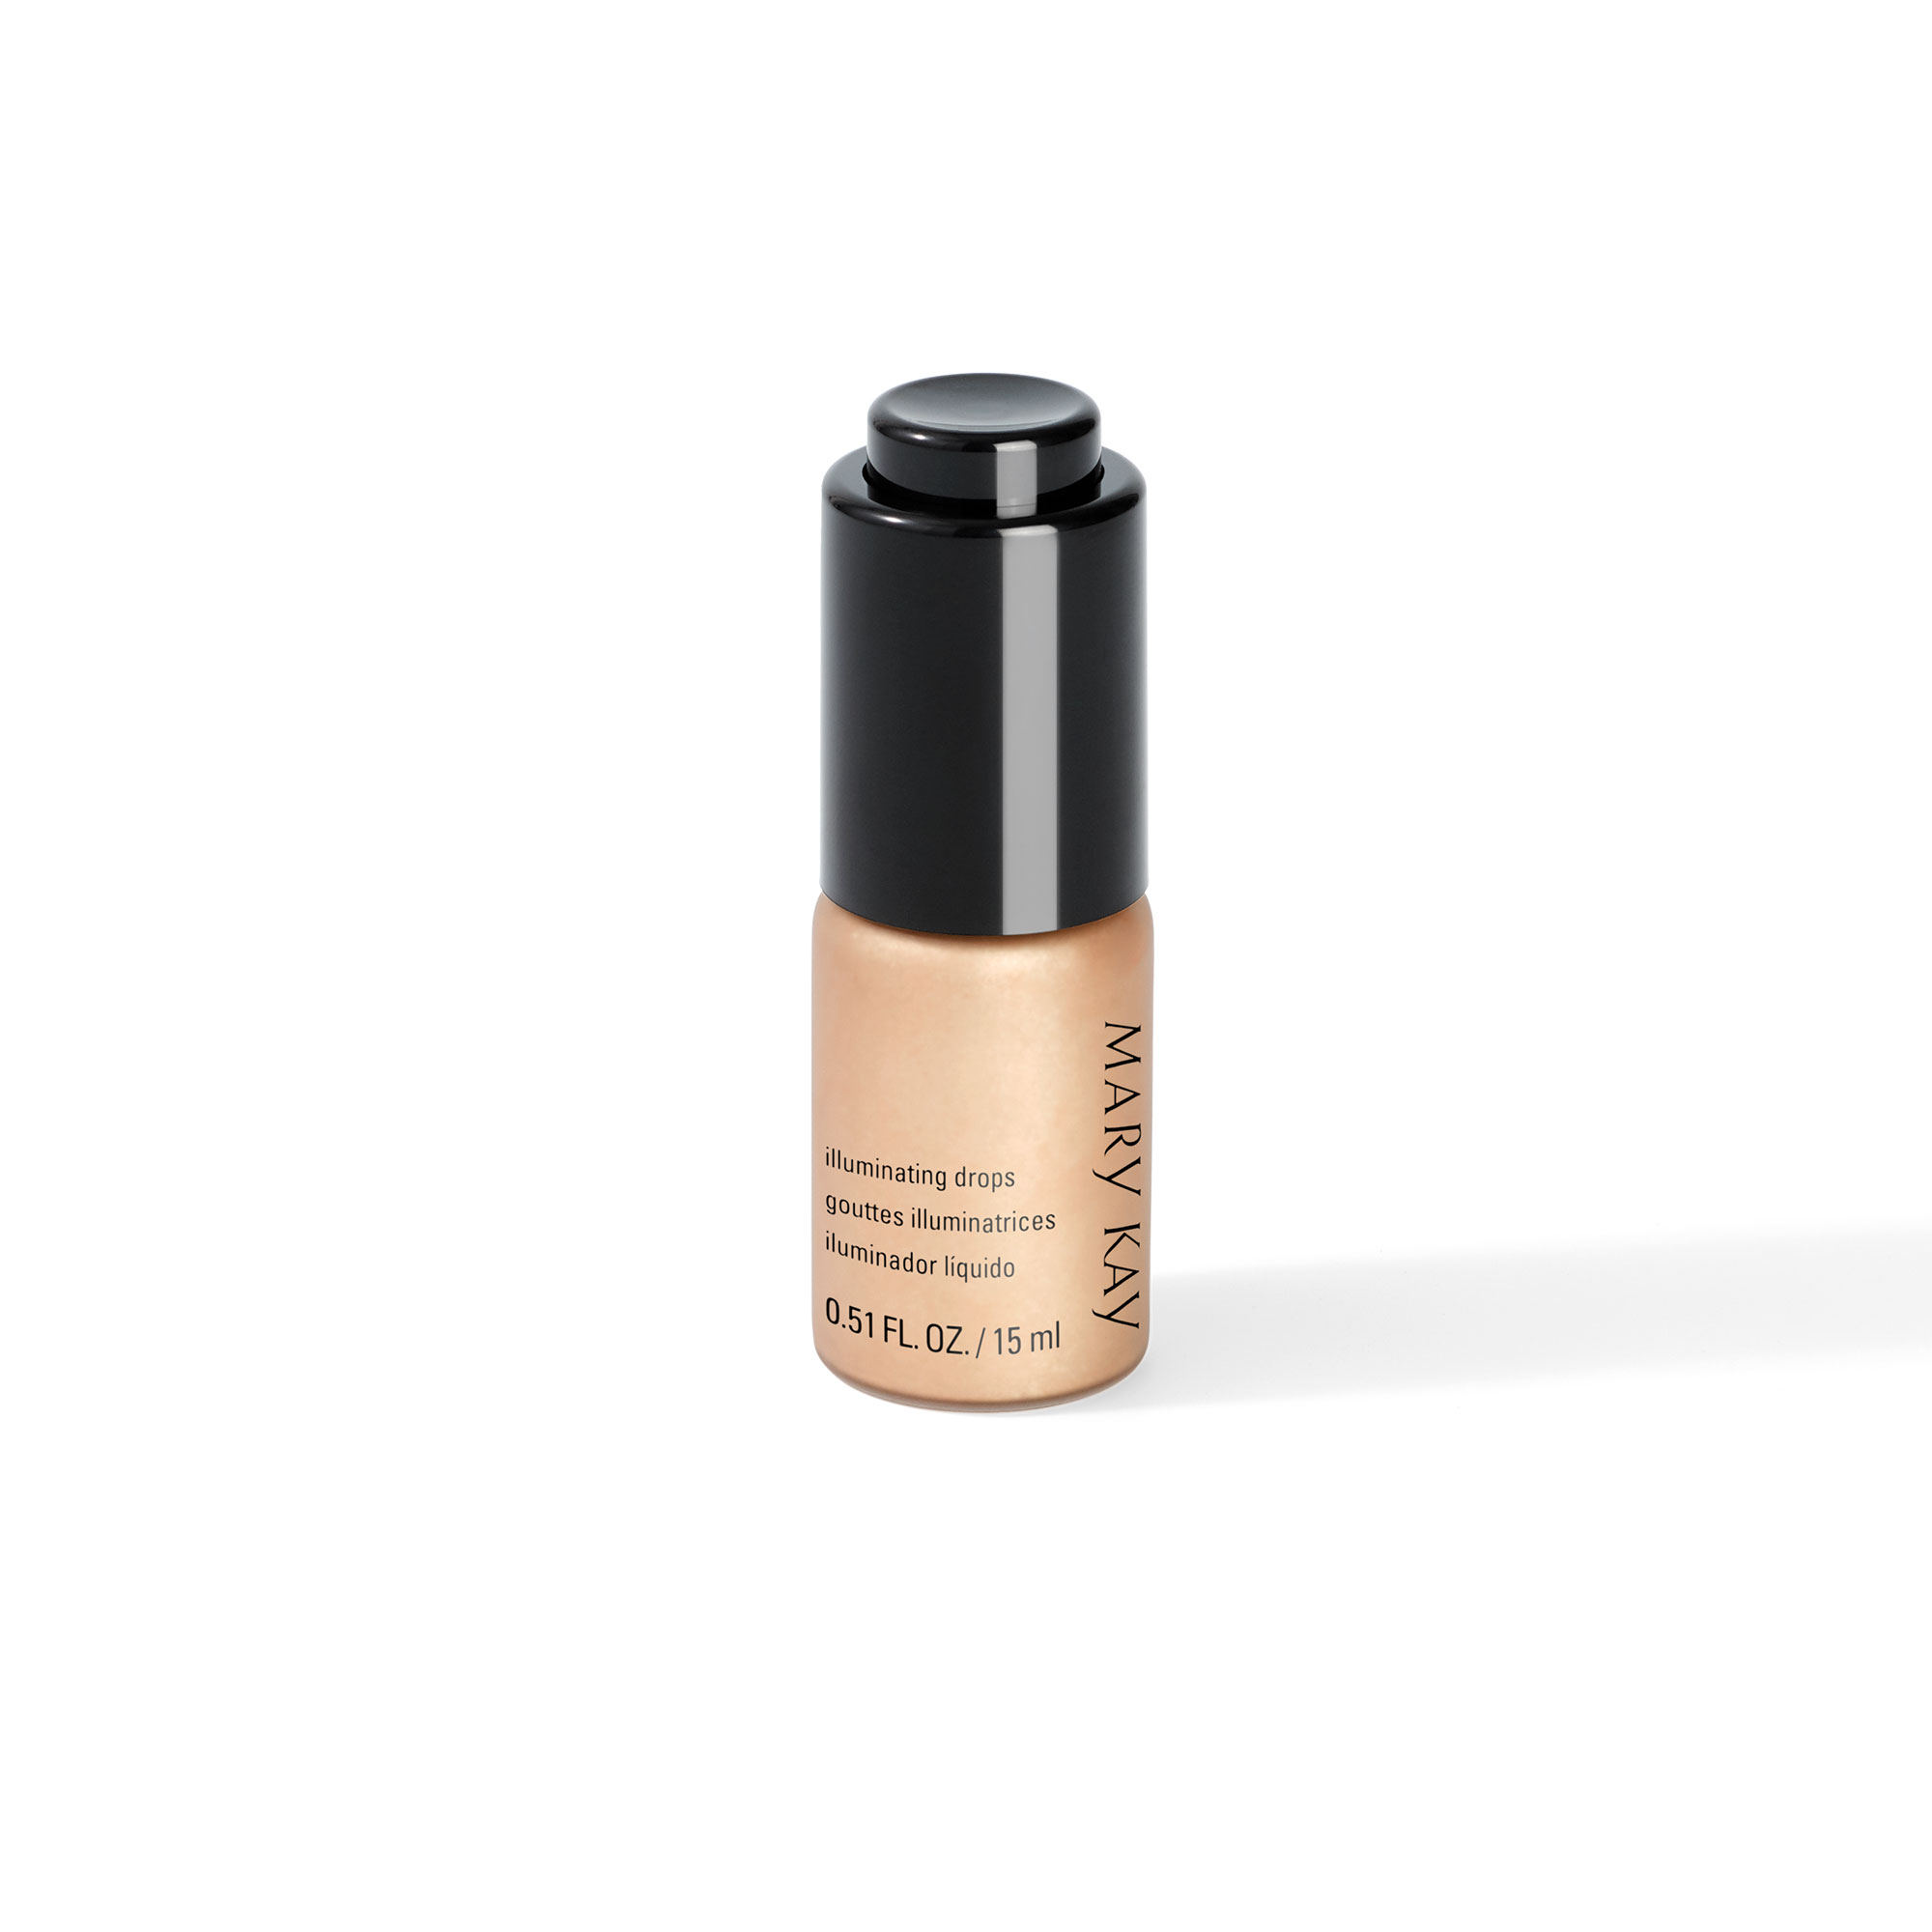 Mary Kay Illuminating Drops The Best New Beauty Products of 2019 - Drop a bit of this lightweight liquified shimmer (available in bronze, rose gold and champagne shades) into your foundation for an all-over glow or dab it onto the high points of the face (think: cheekbone, nose, brow bone, etc.) for a subtle radiance. $22, marykay.com